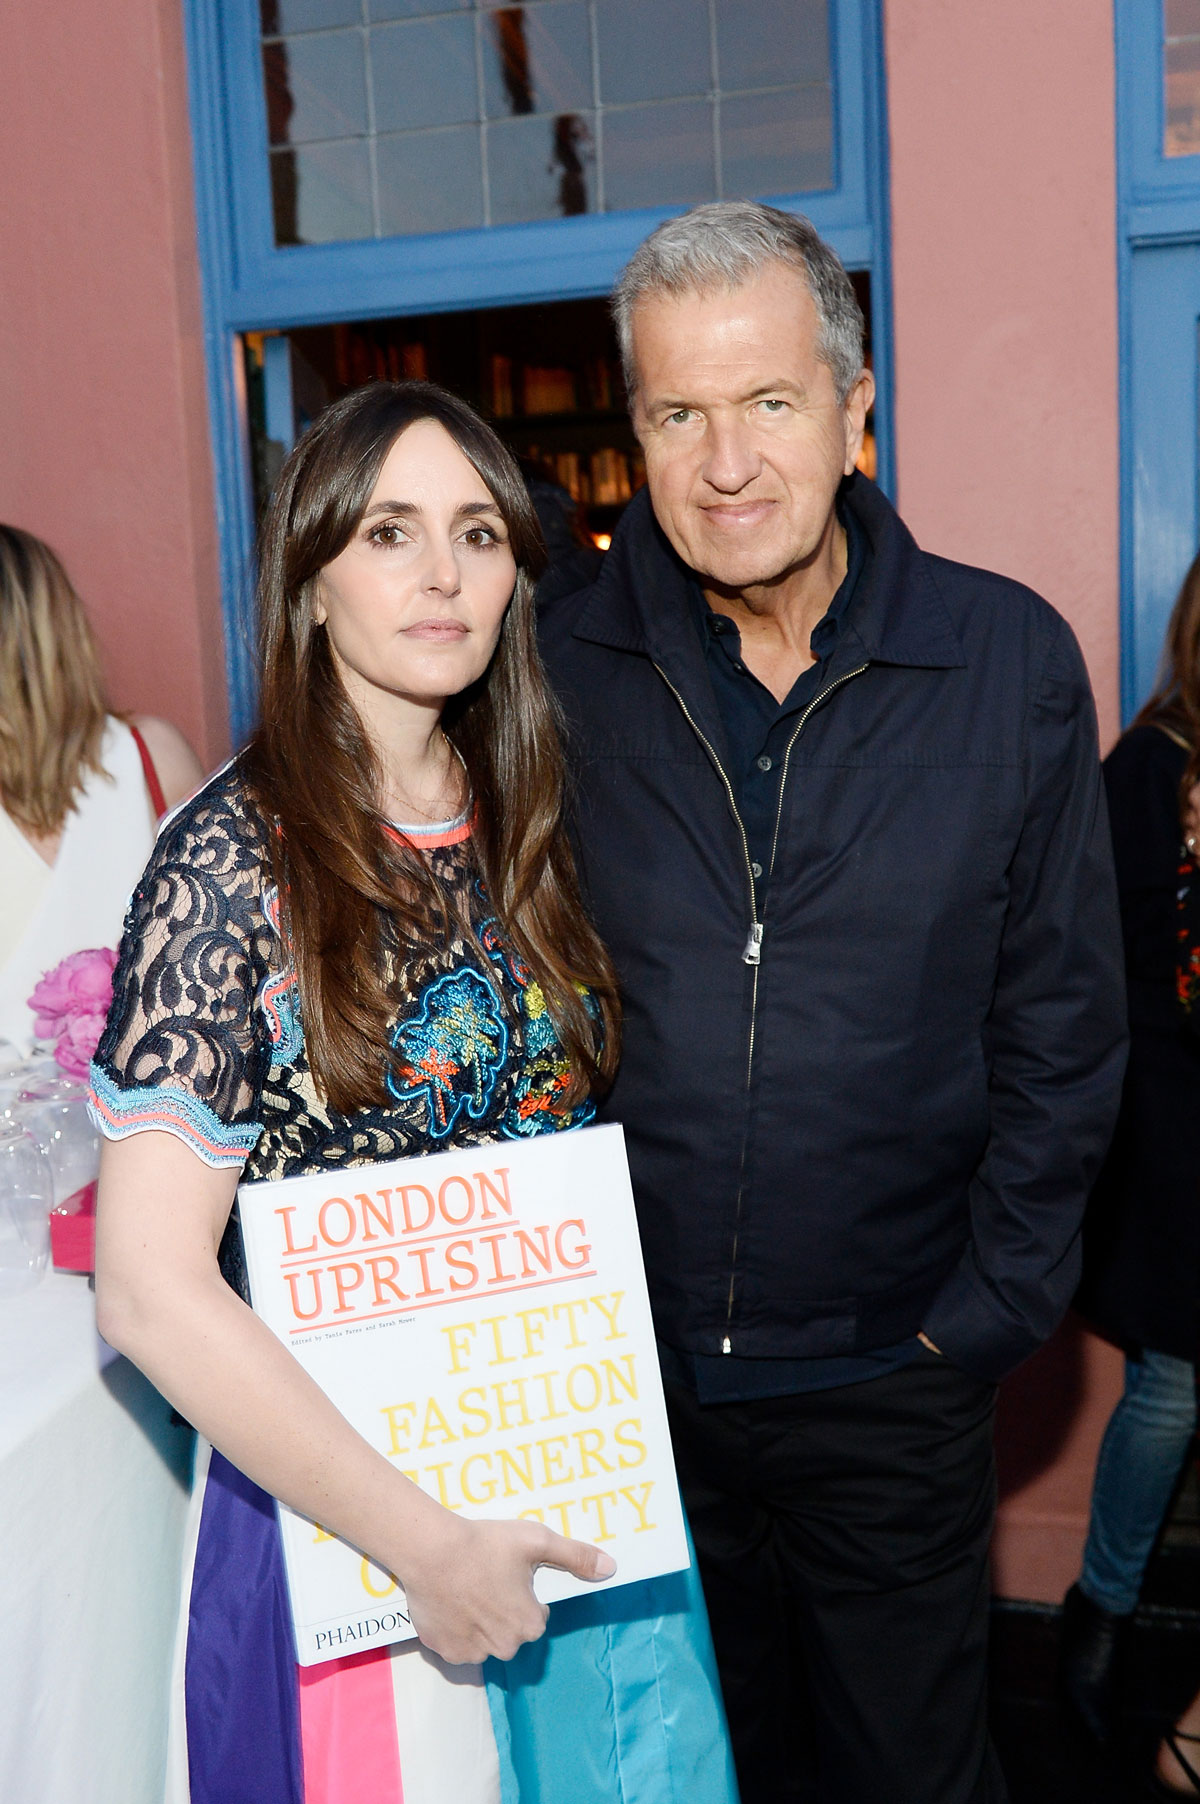 Tania Fares and Mario Testino celebrate the launch of London Uprising: Fifty Fashion Designers One City on April 18, 2017 in Los Angeles, California. (Photo by Stefanie Keenan/Getty Images for Tania Fares)